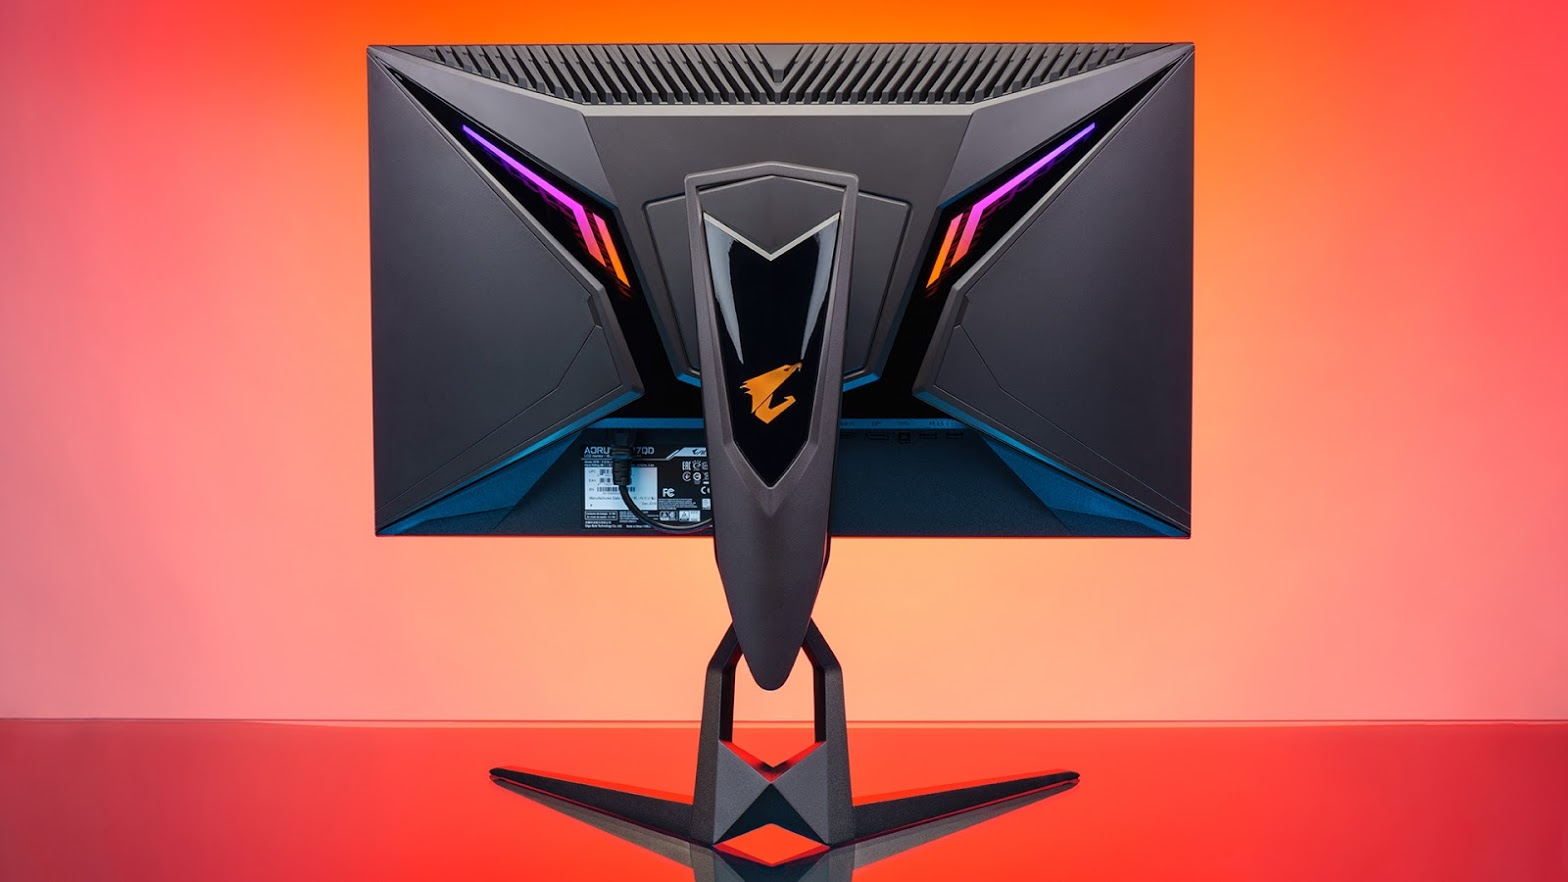 back of the aorus monitor in a red RGB-lit background